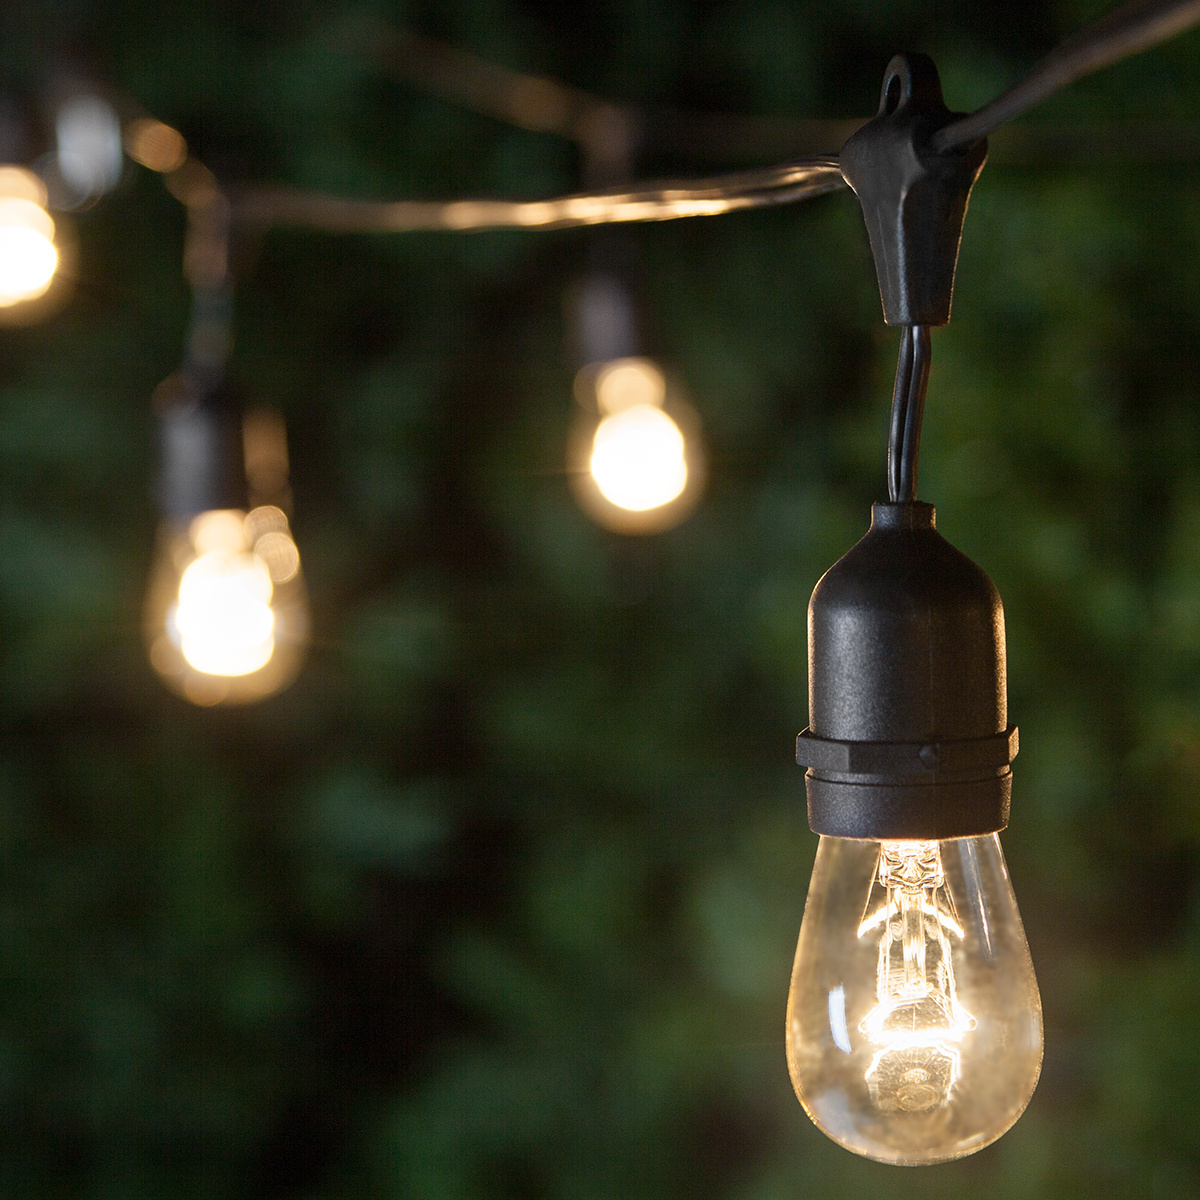 patio lights - commercial clear patio string lights, 24 s14 e26 bulbs black AFLYPPA